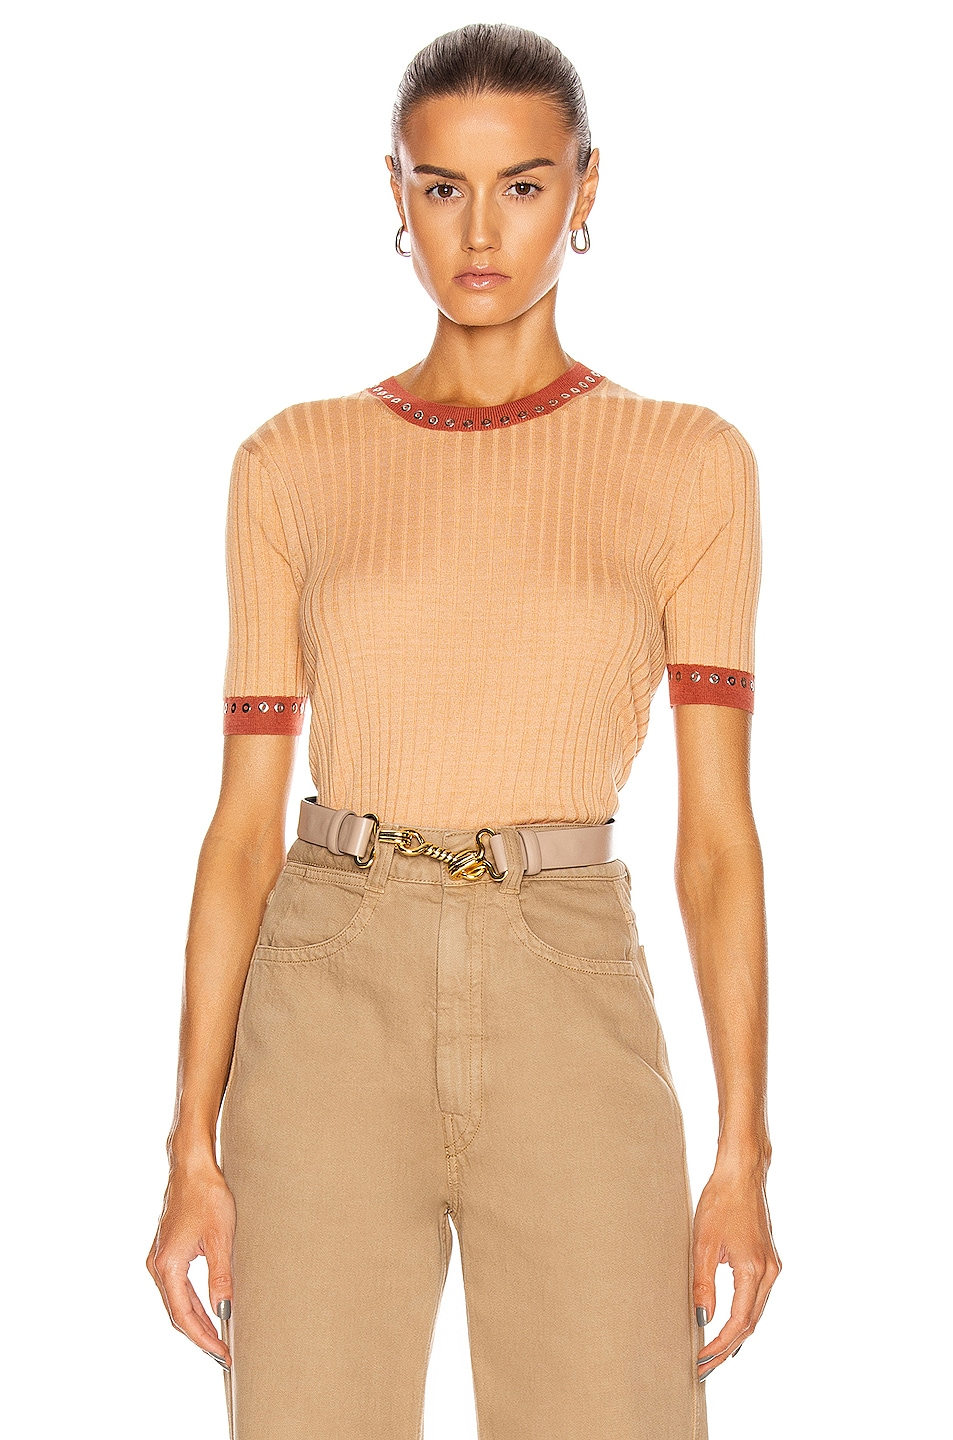 Image 1 of Chloe Rib Short Sleeve Top in Nude Orange